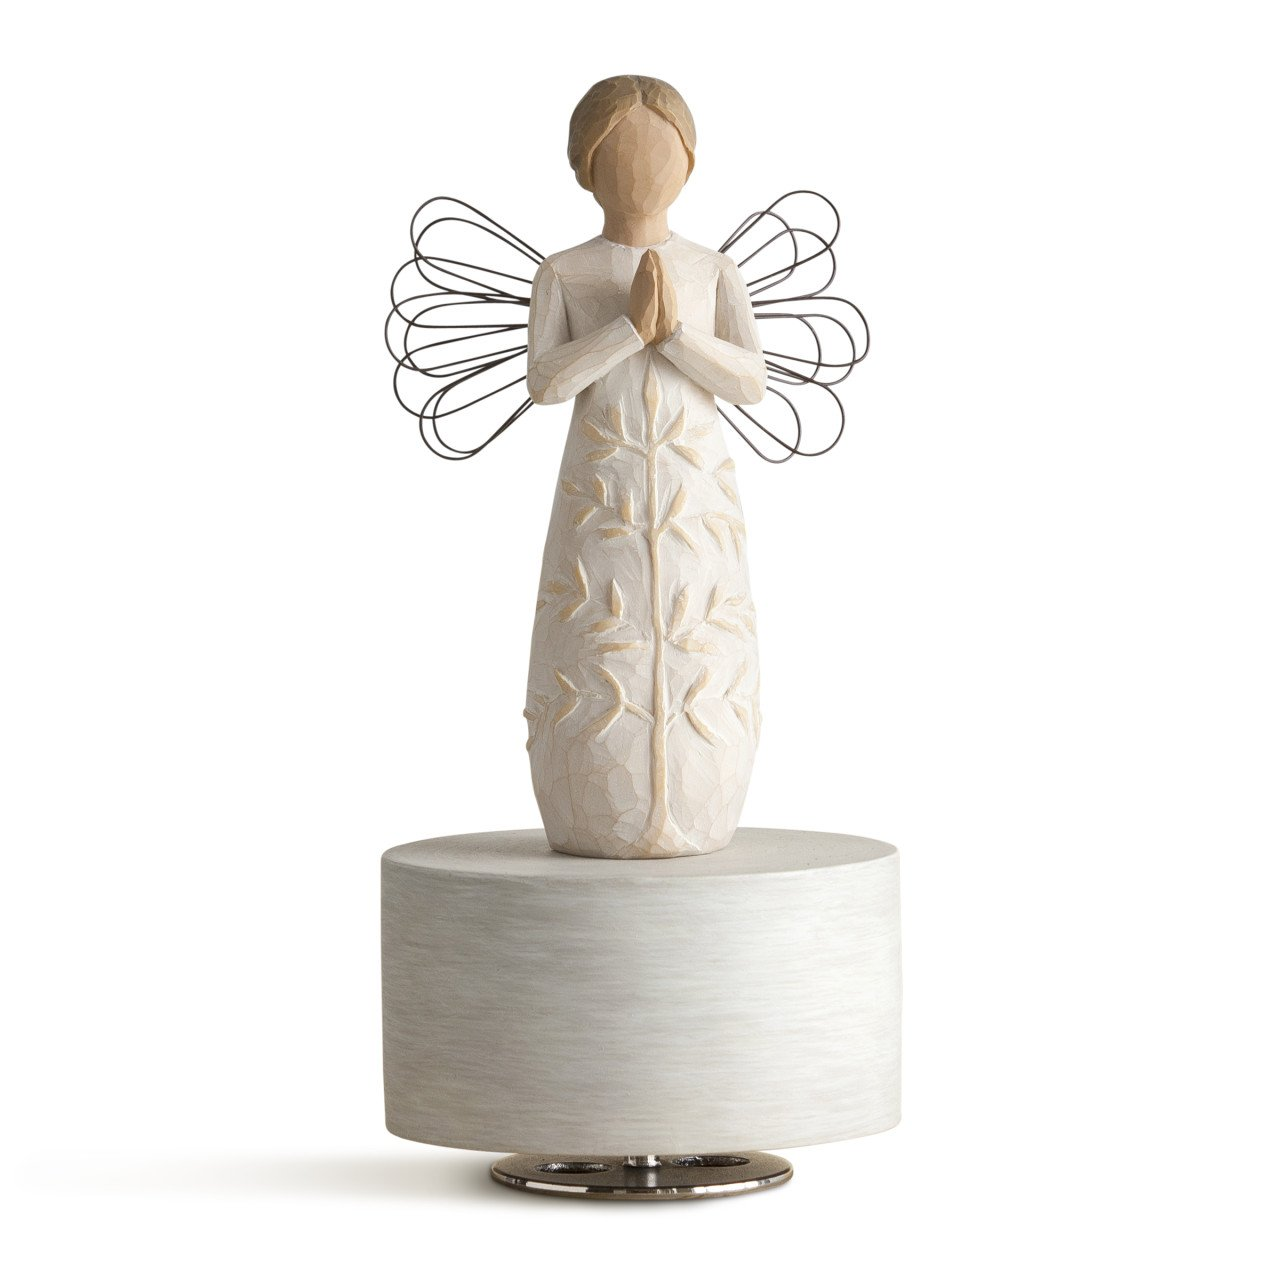 Willow Tree a tree, a prayer Musical, sculpted hand-painted musical figure by Willow Tree